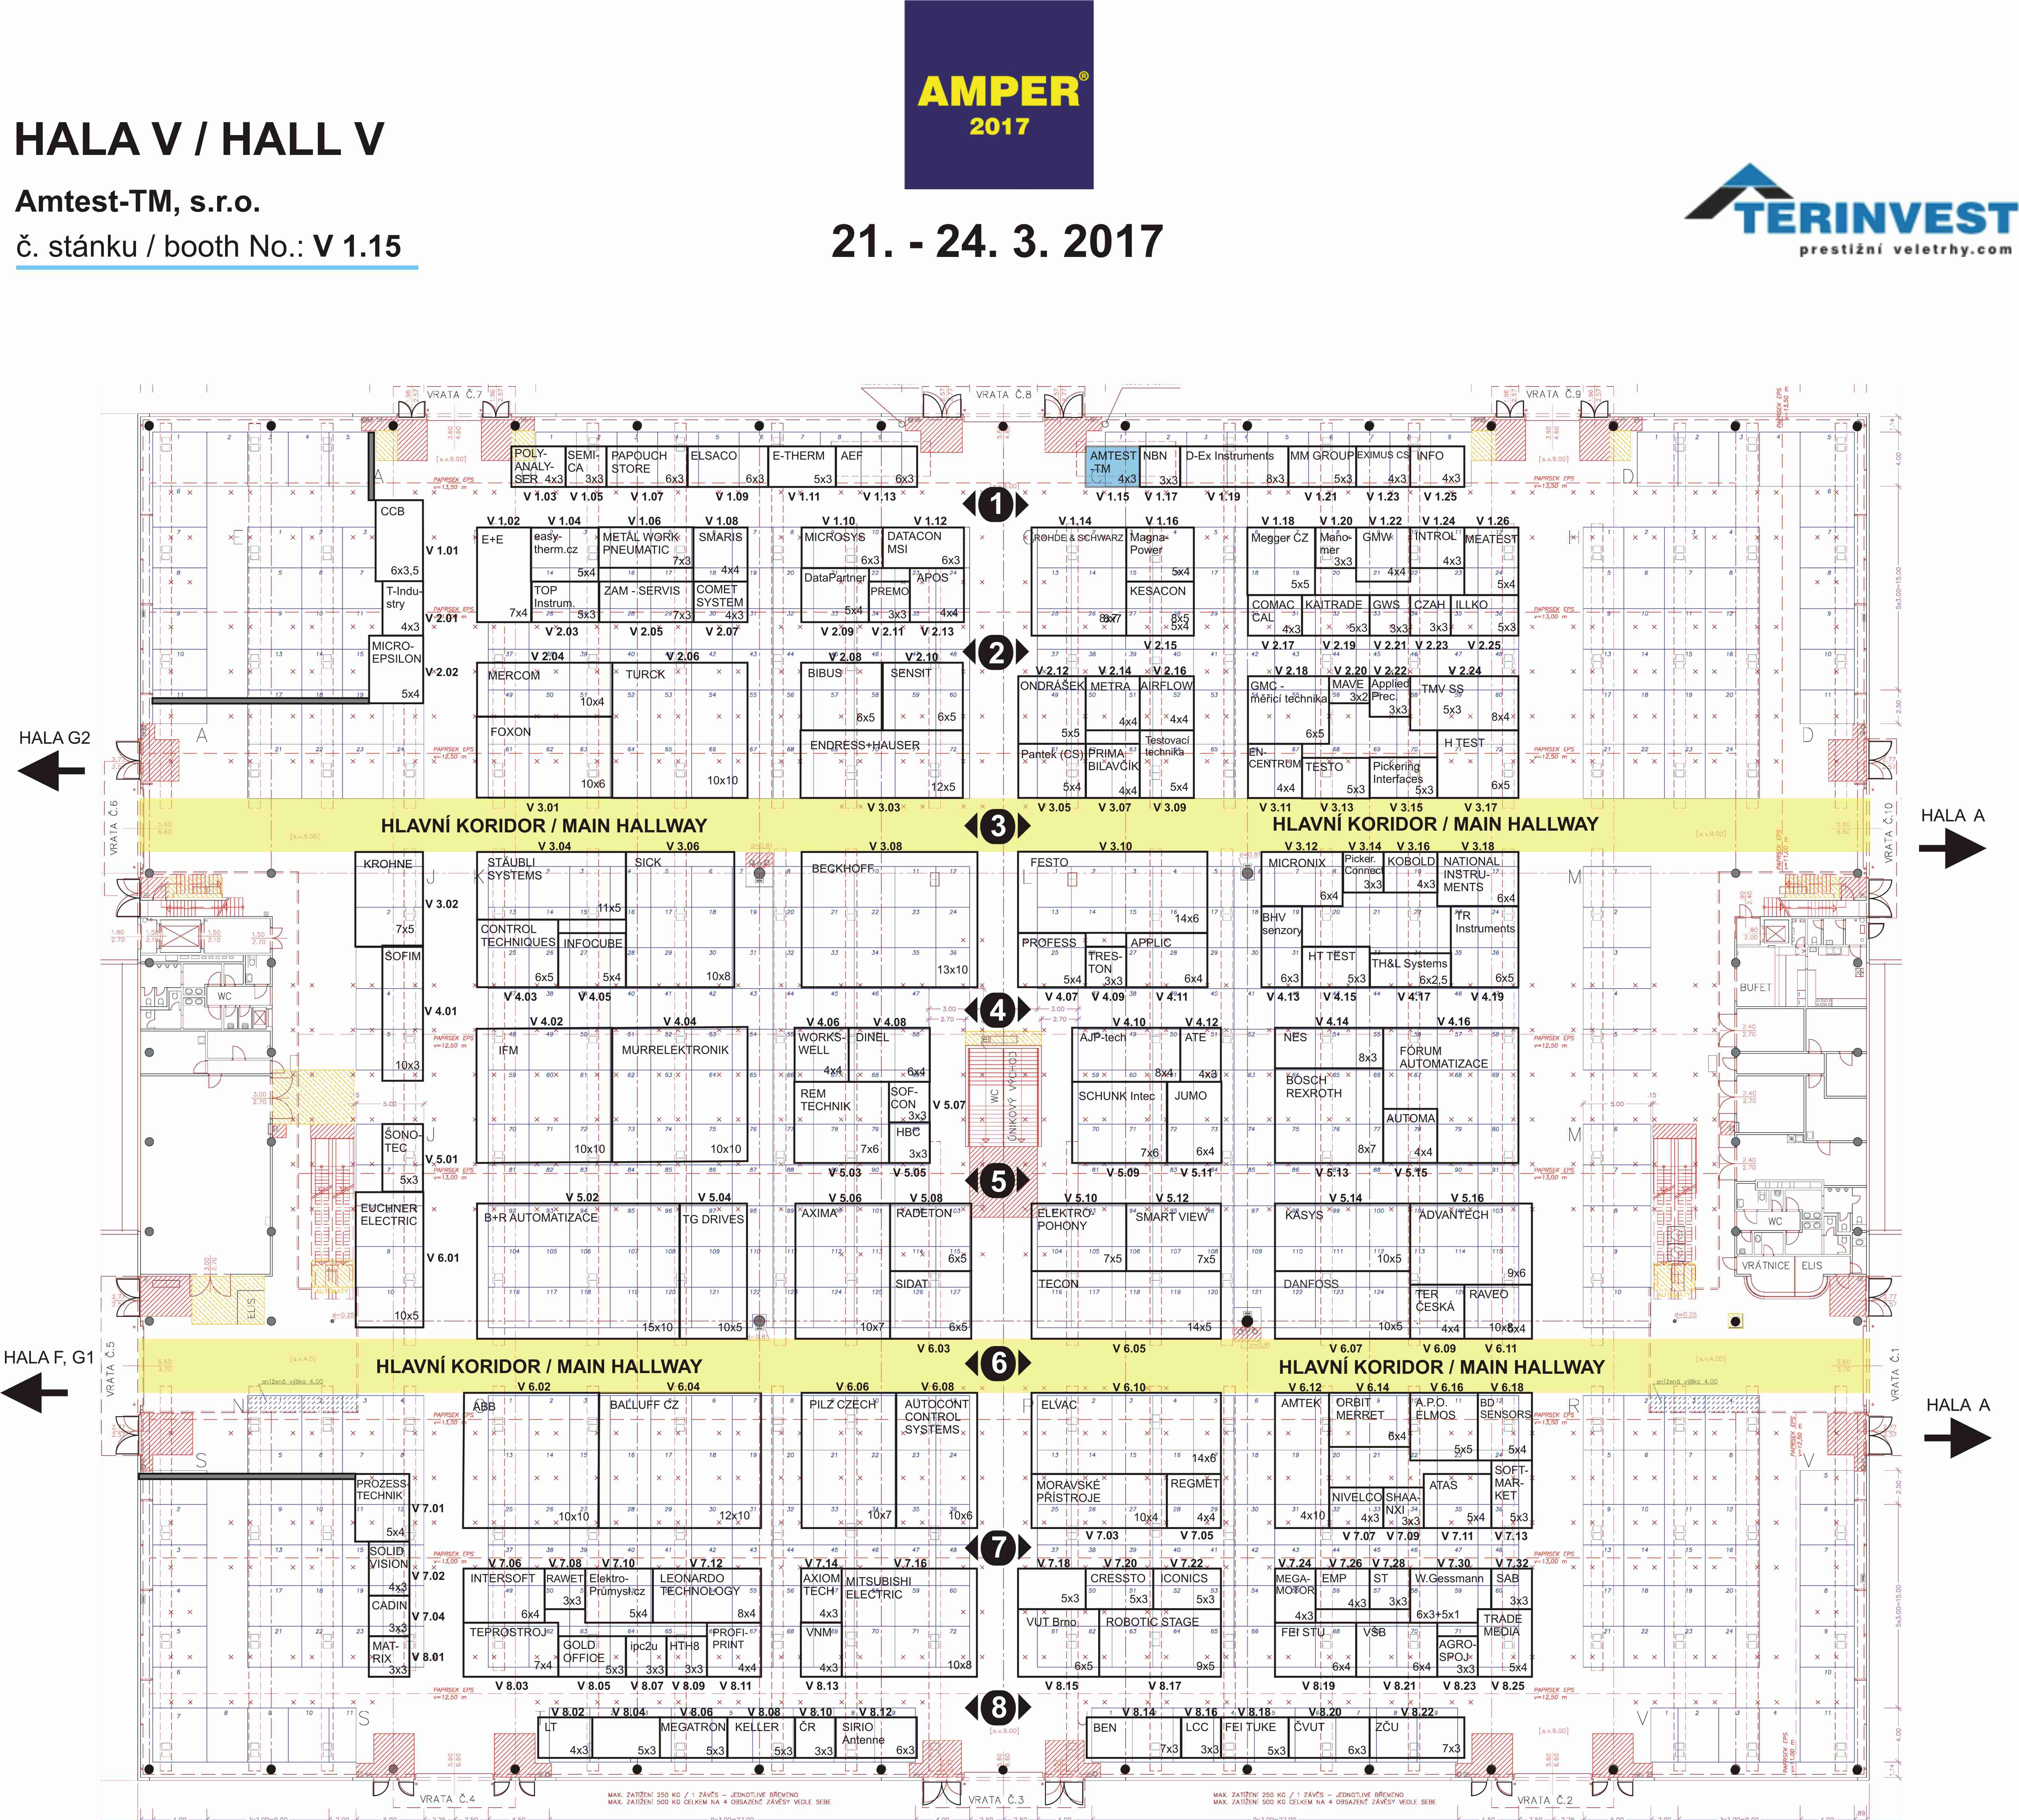 Floor plan of hall V with Amtest-TM booth